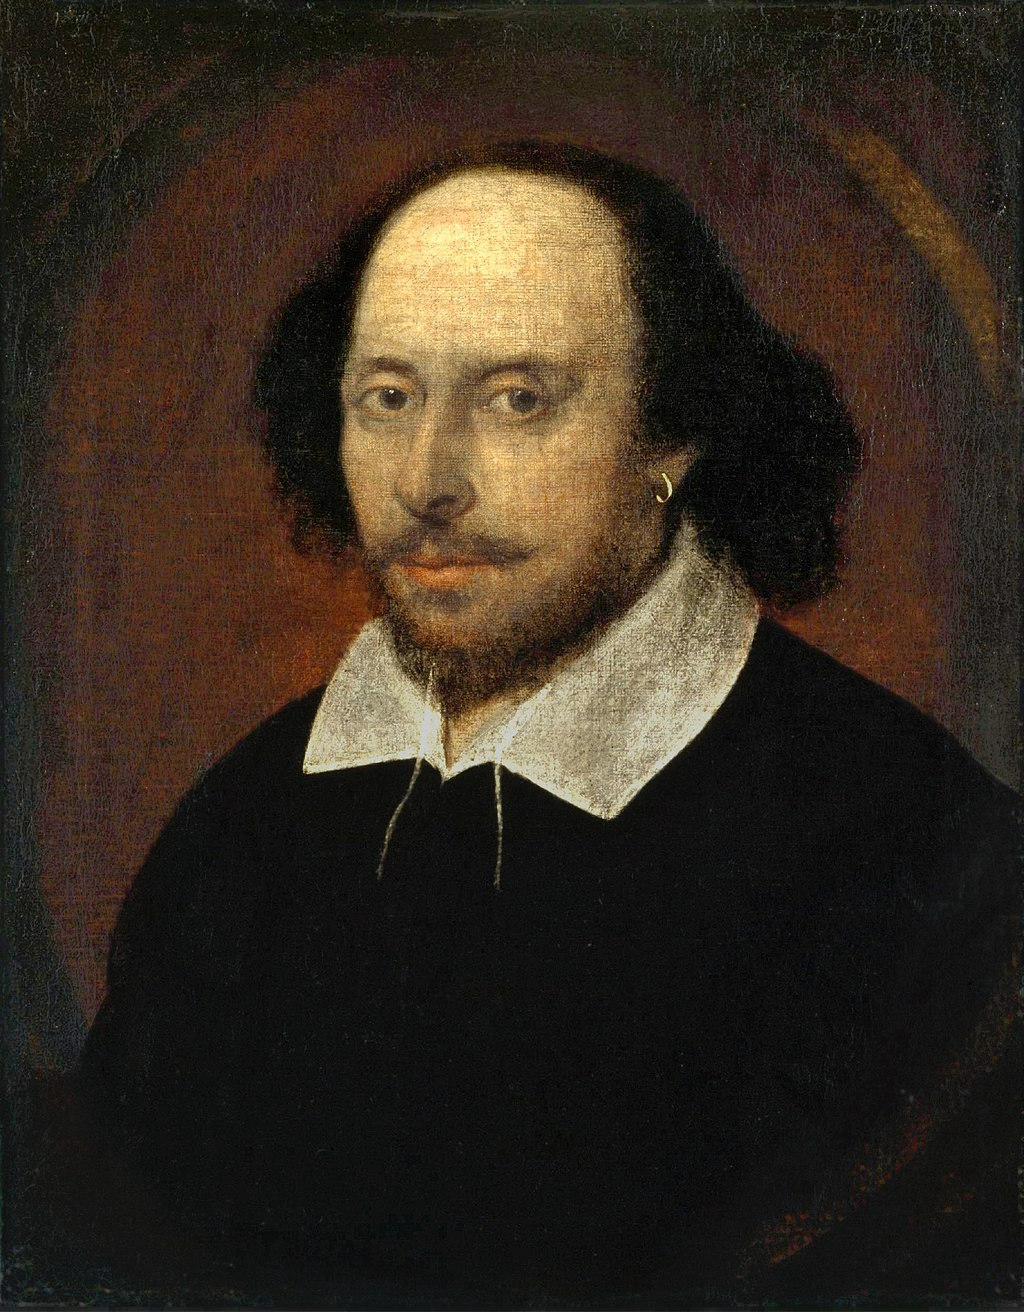 William Shakespeare (Inghilterra) - ita/eng